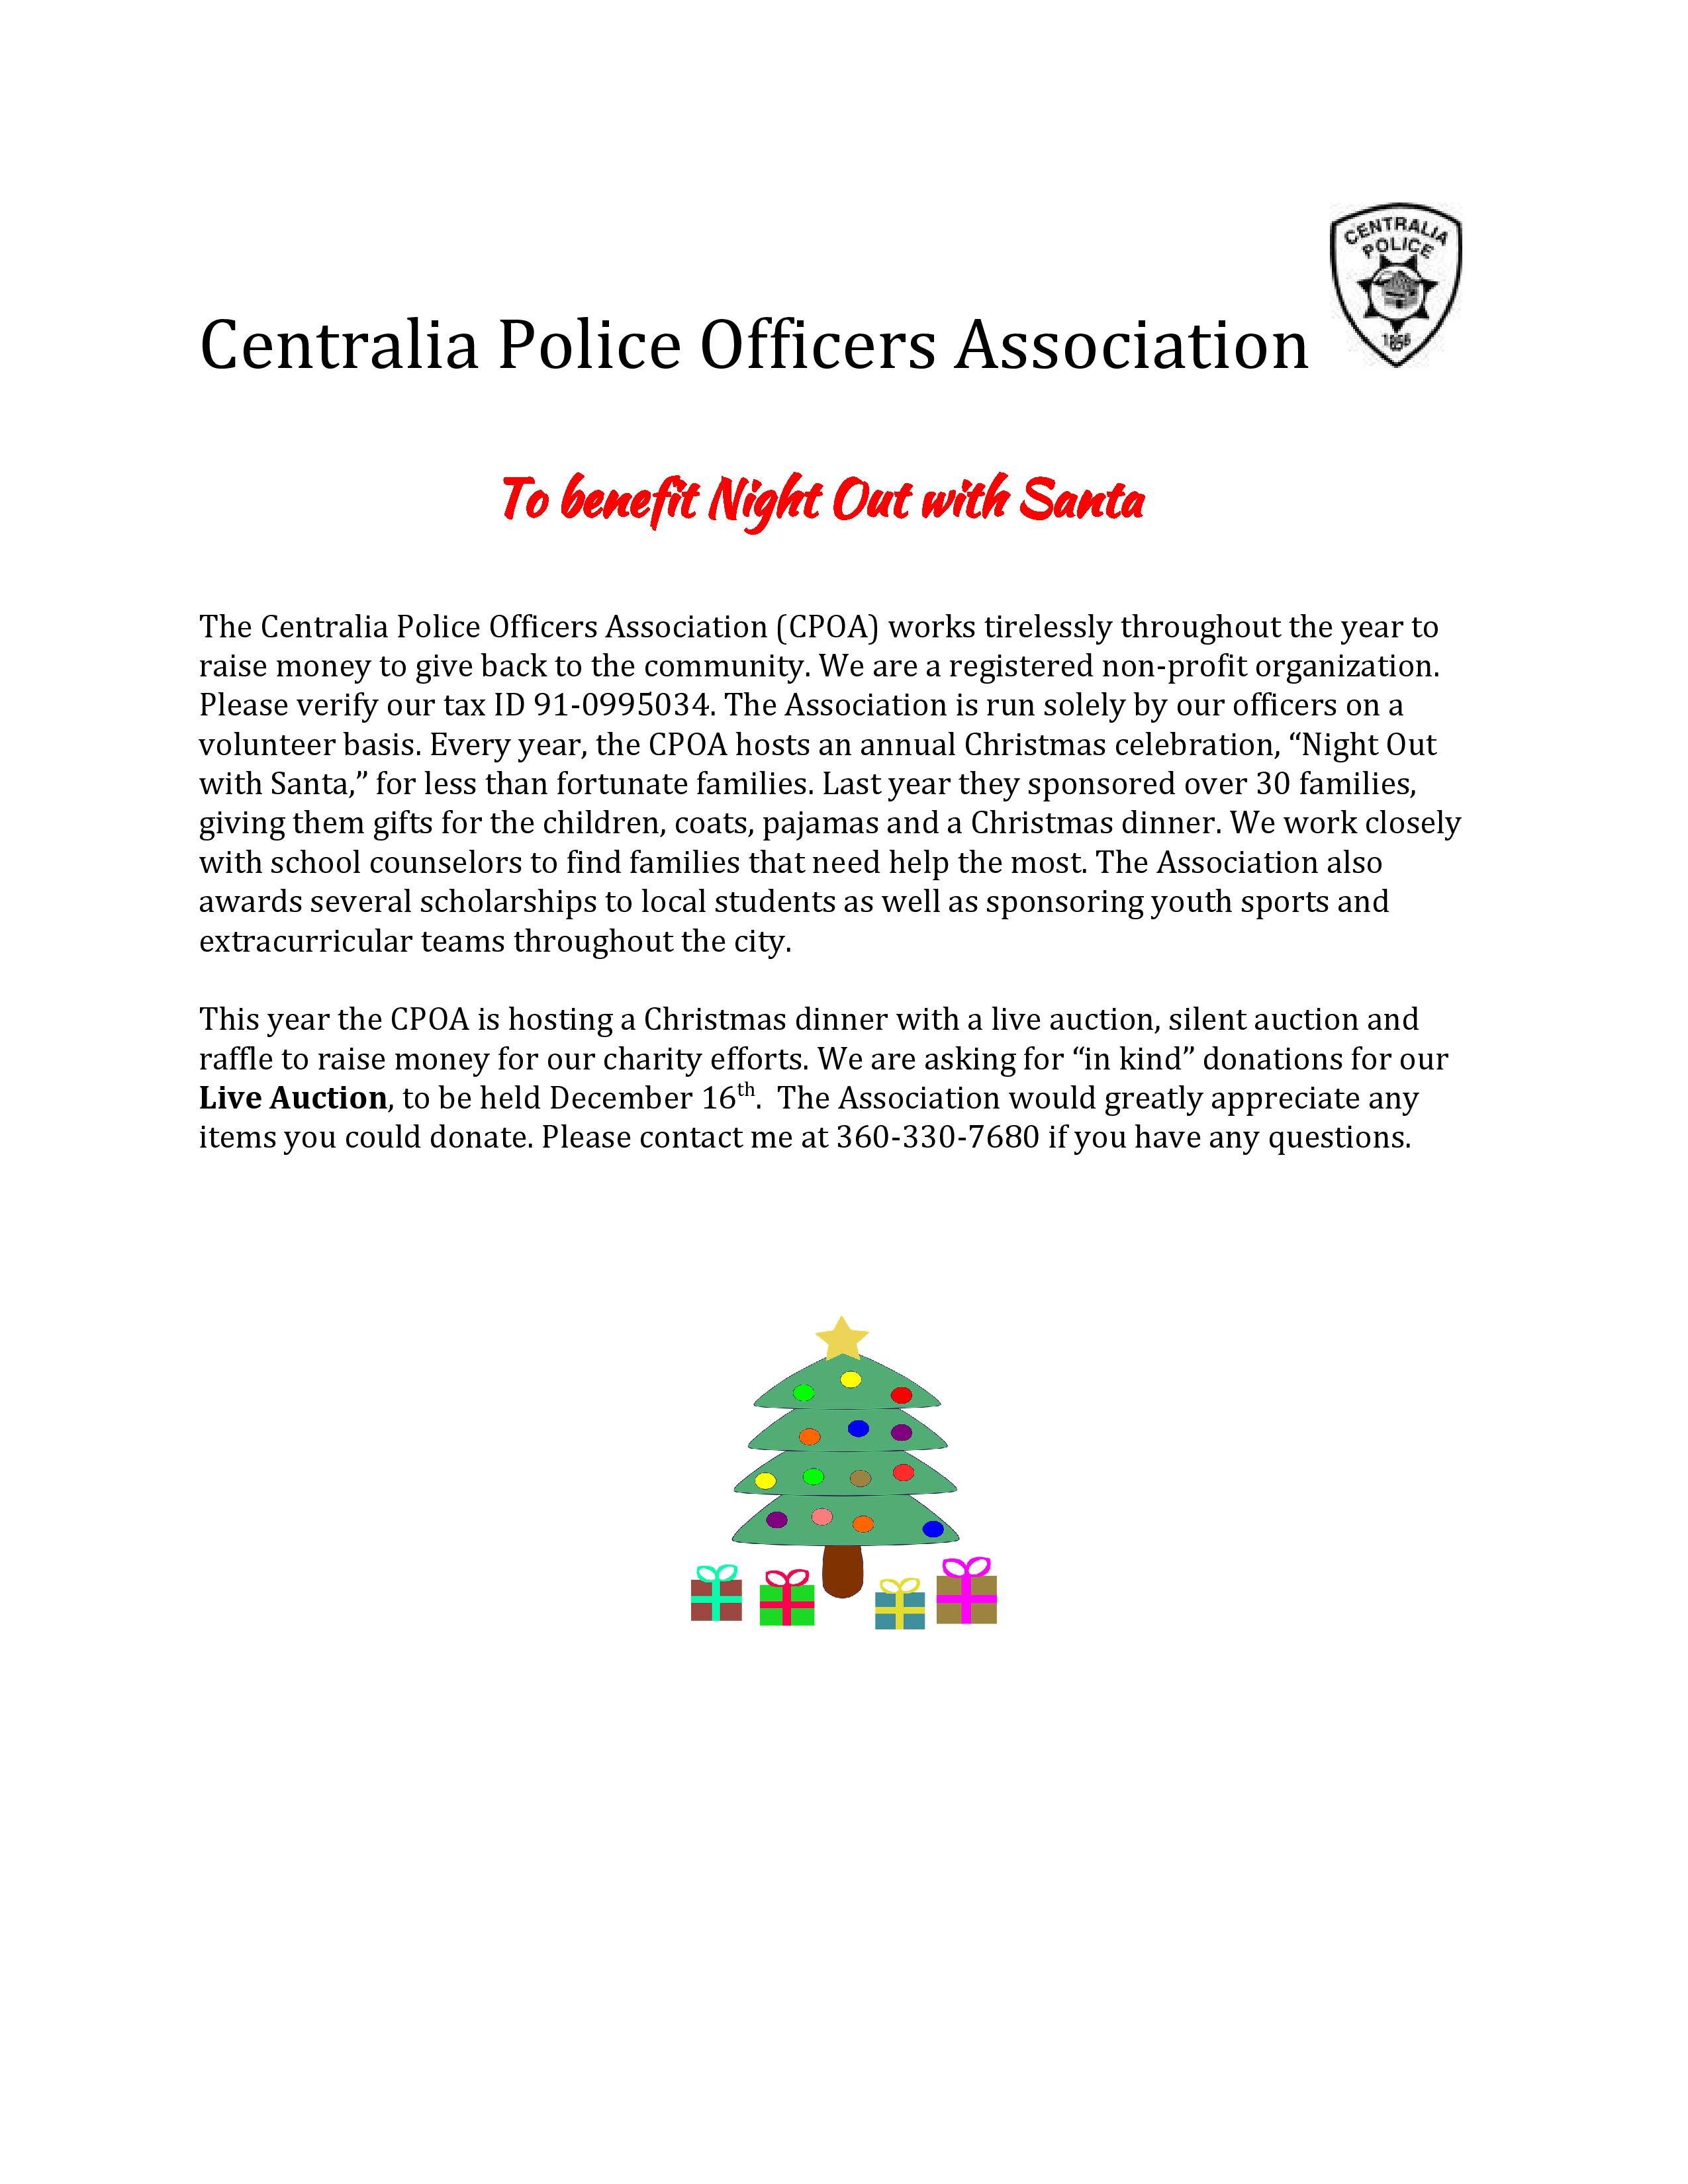 christmas-in-kind-donation-letter-2016-docx-page-001 | Centralia ...